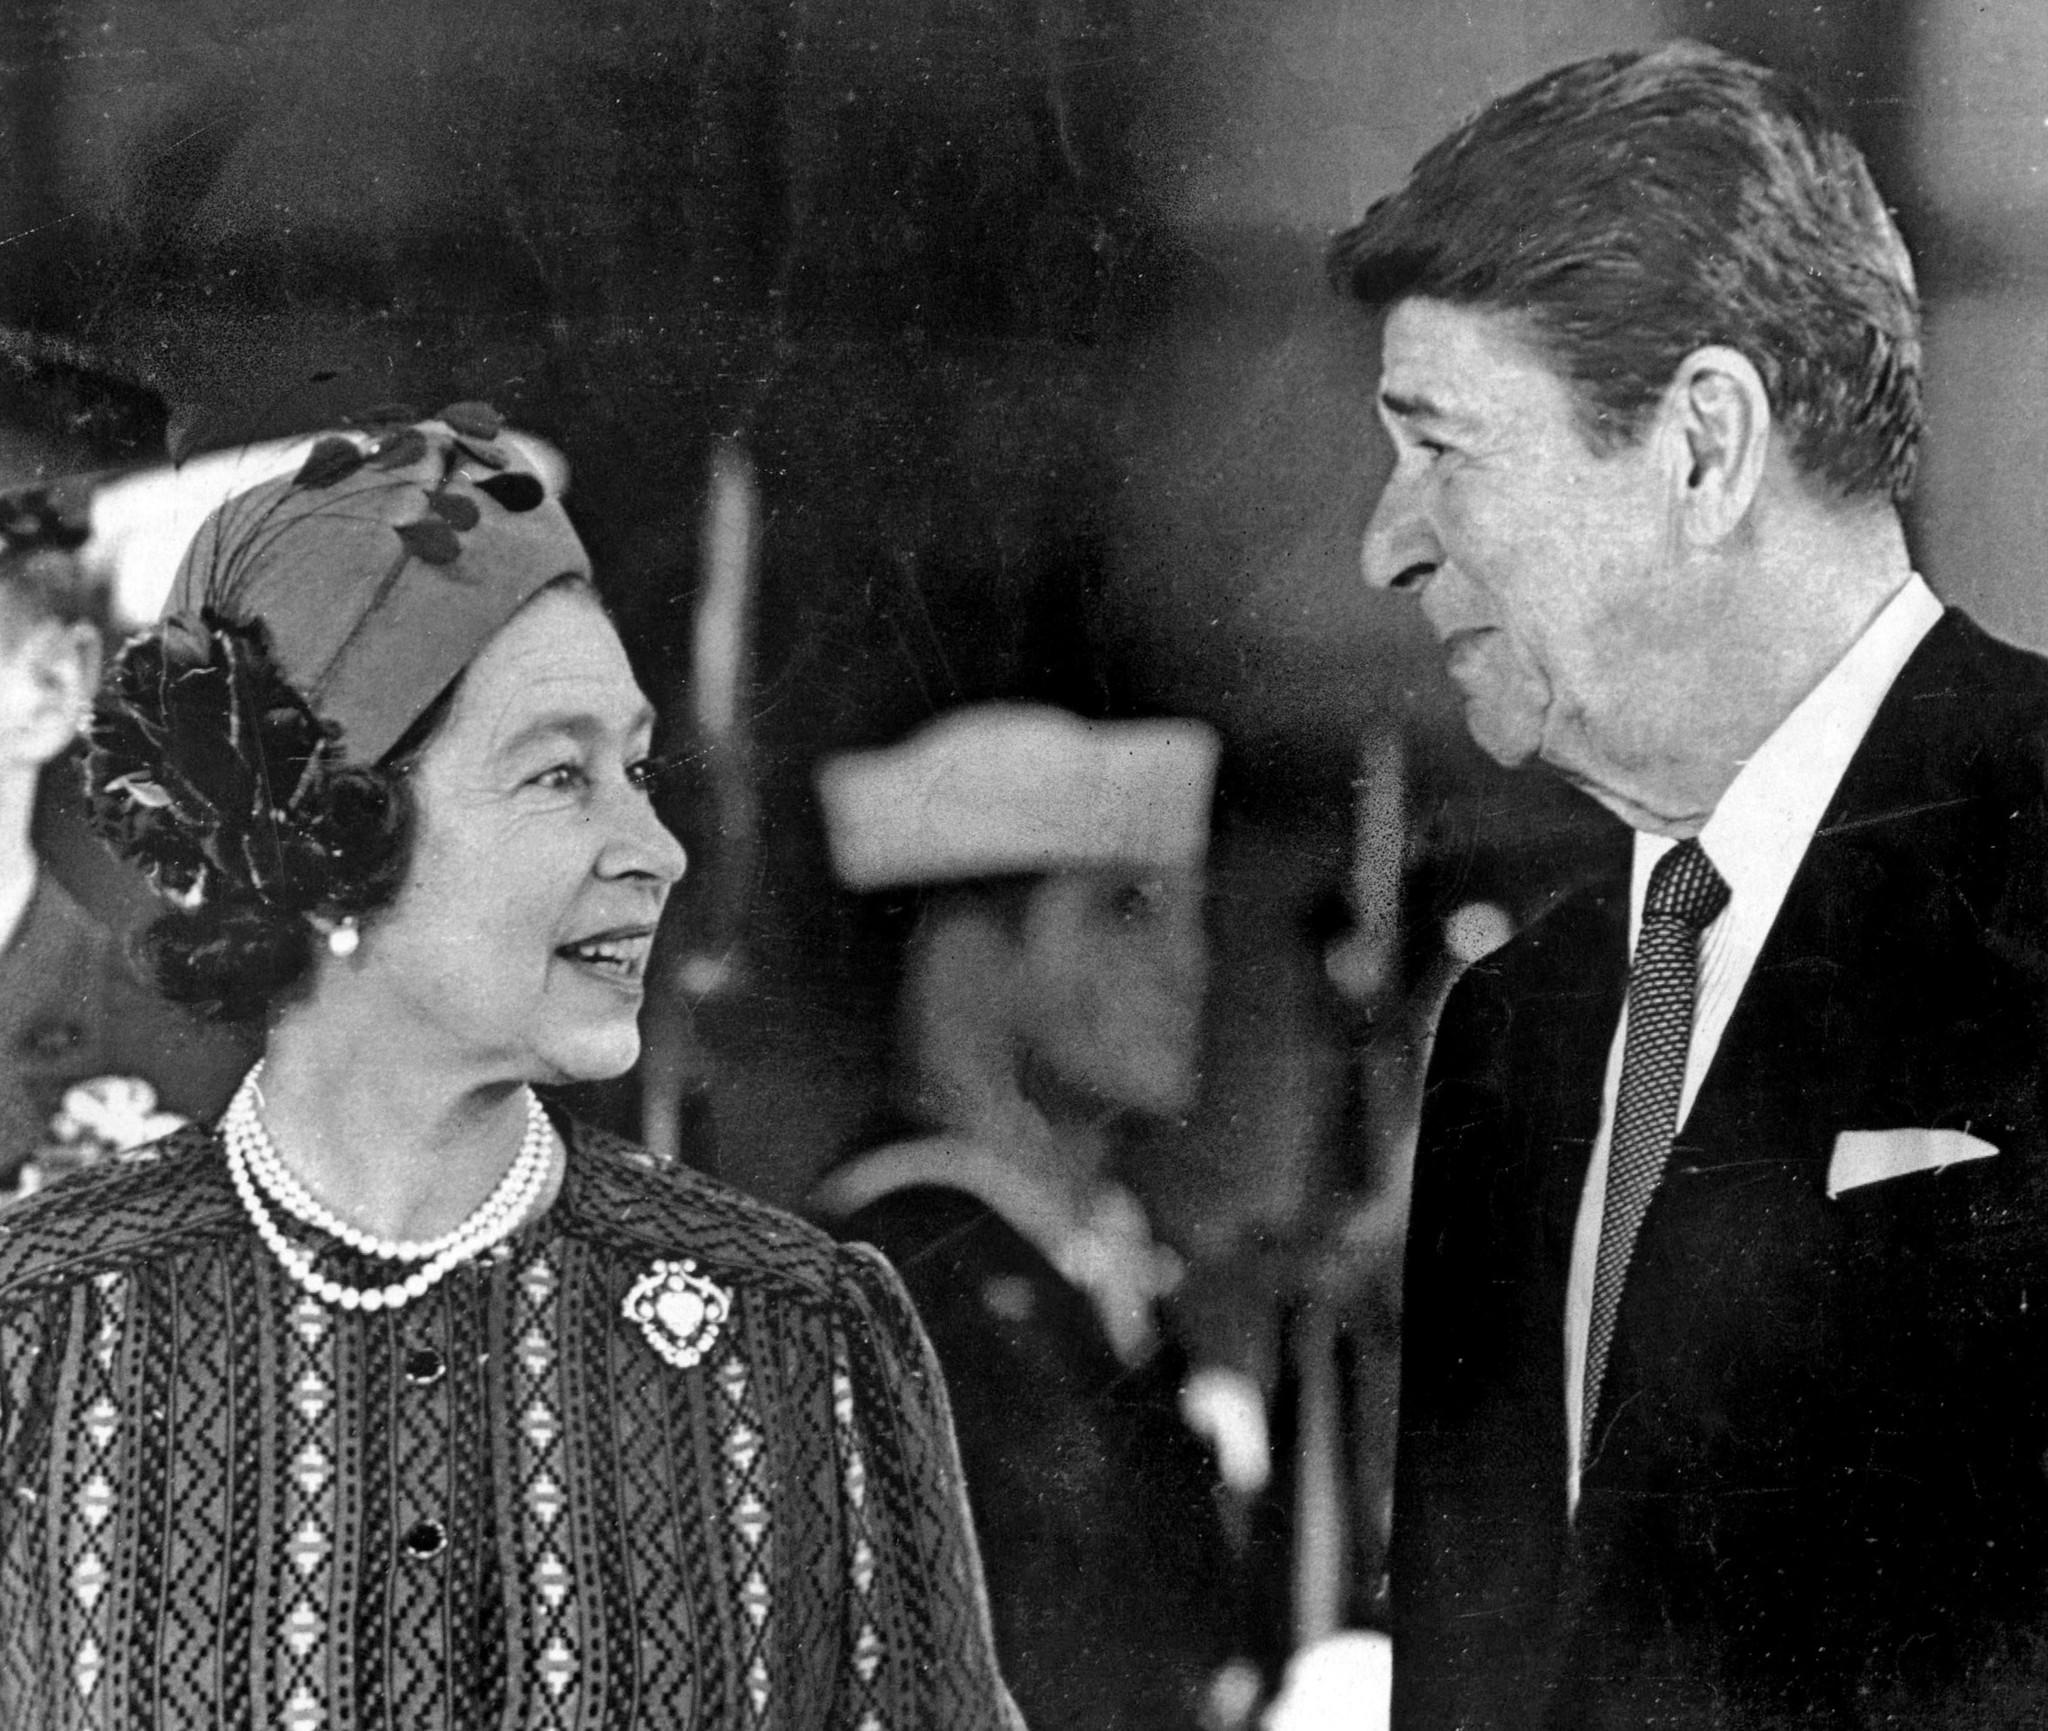 March 1, 1983: Queen Elizabeth II and President Ronald Reagan chat at Santa Barbara airport before a visit to the Reagans' hilltop ranch. This photo was published in the March 2, 1983, Los Angeles Times.